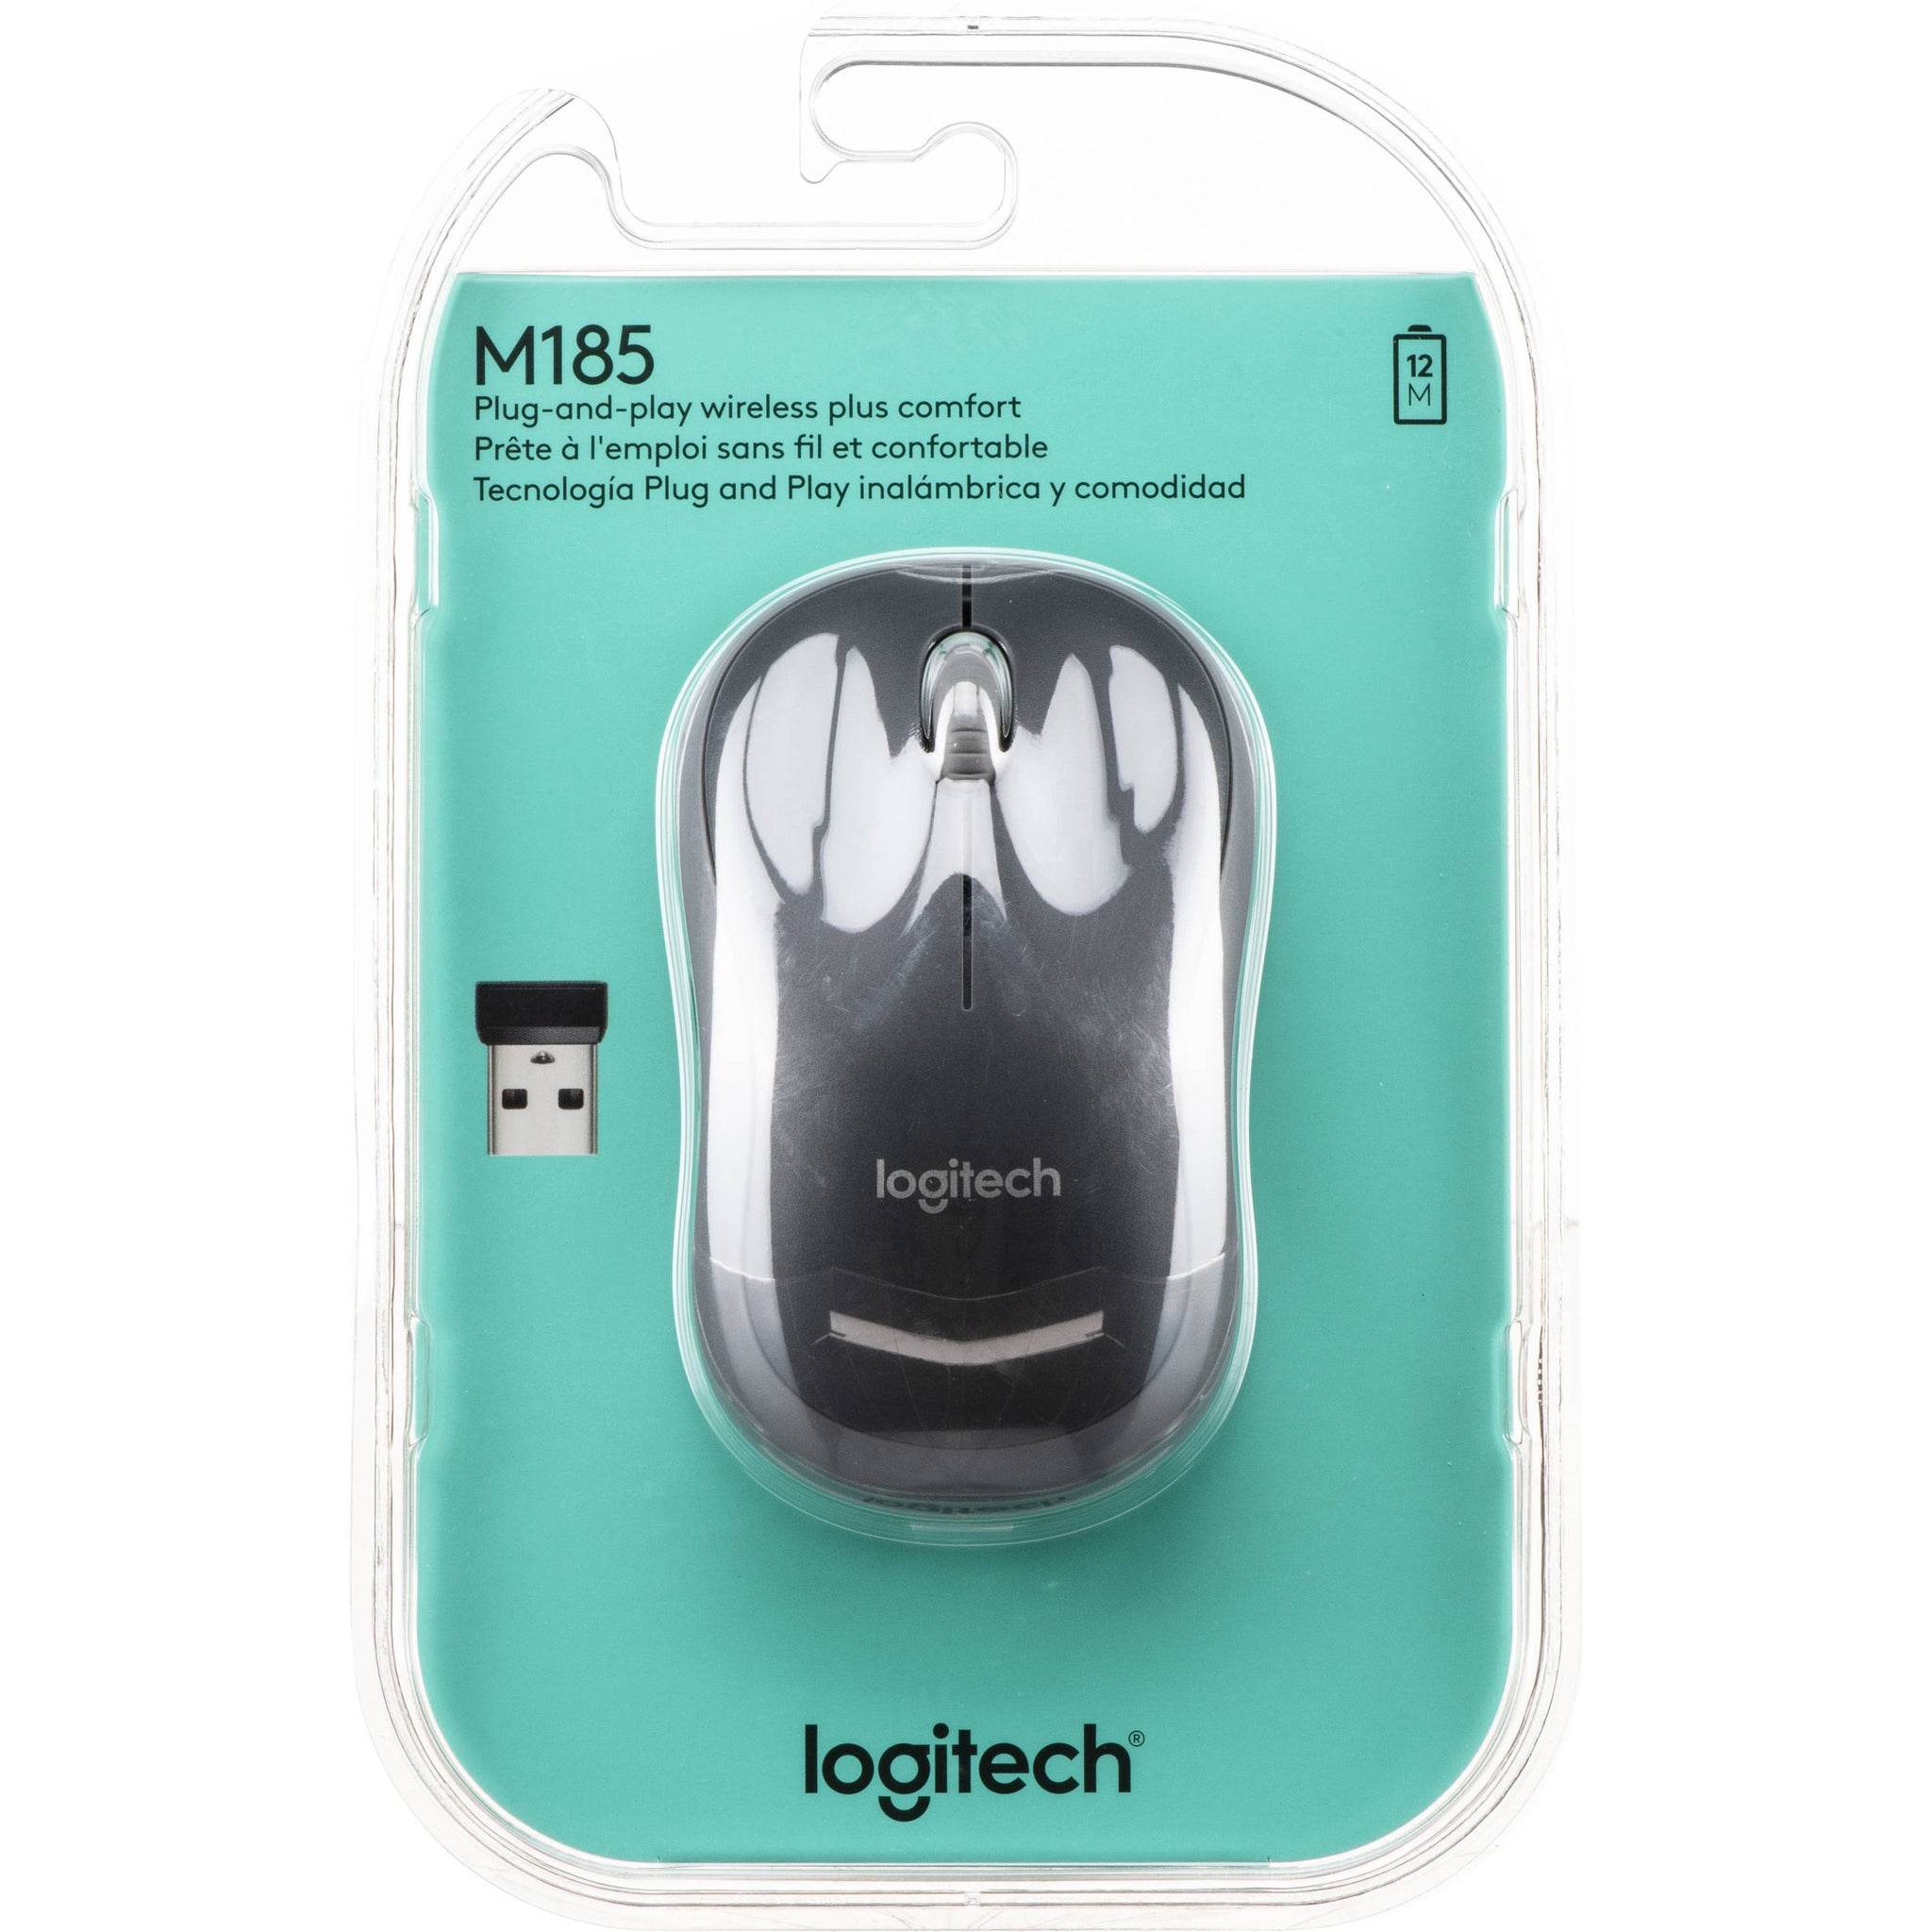 Logitech Mouse - Black (M185)